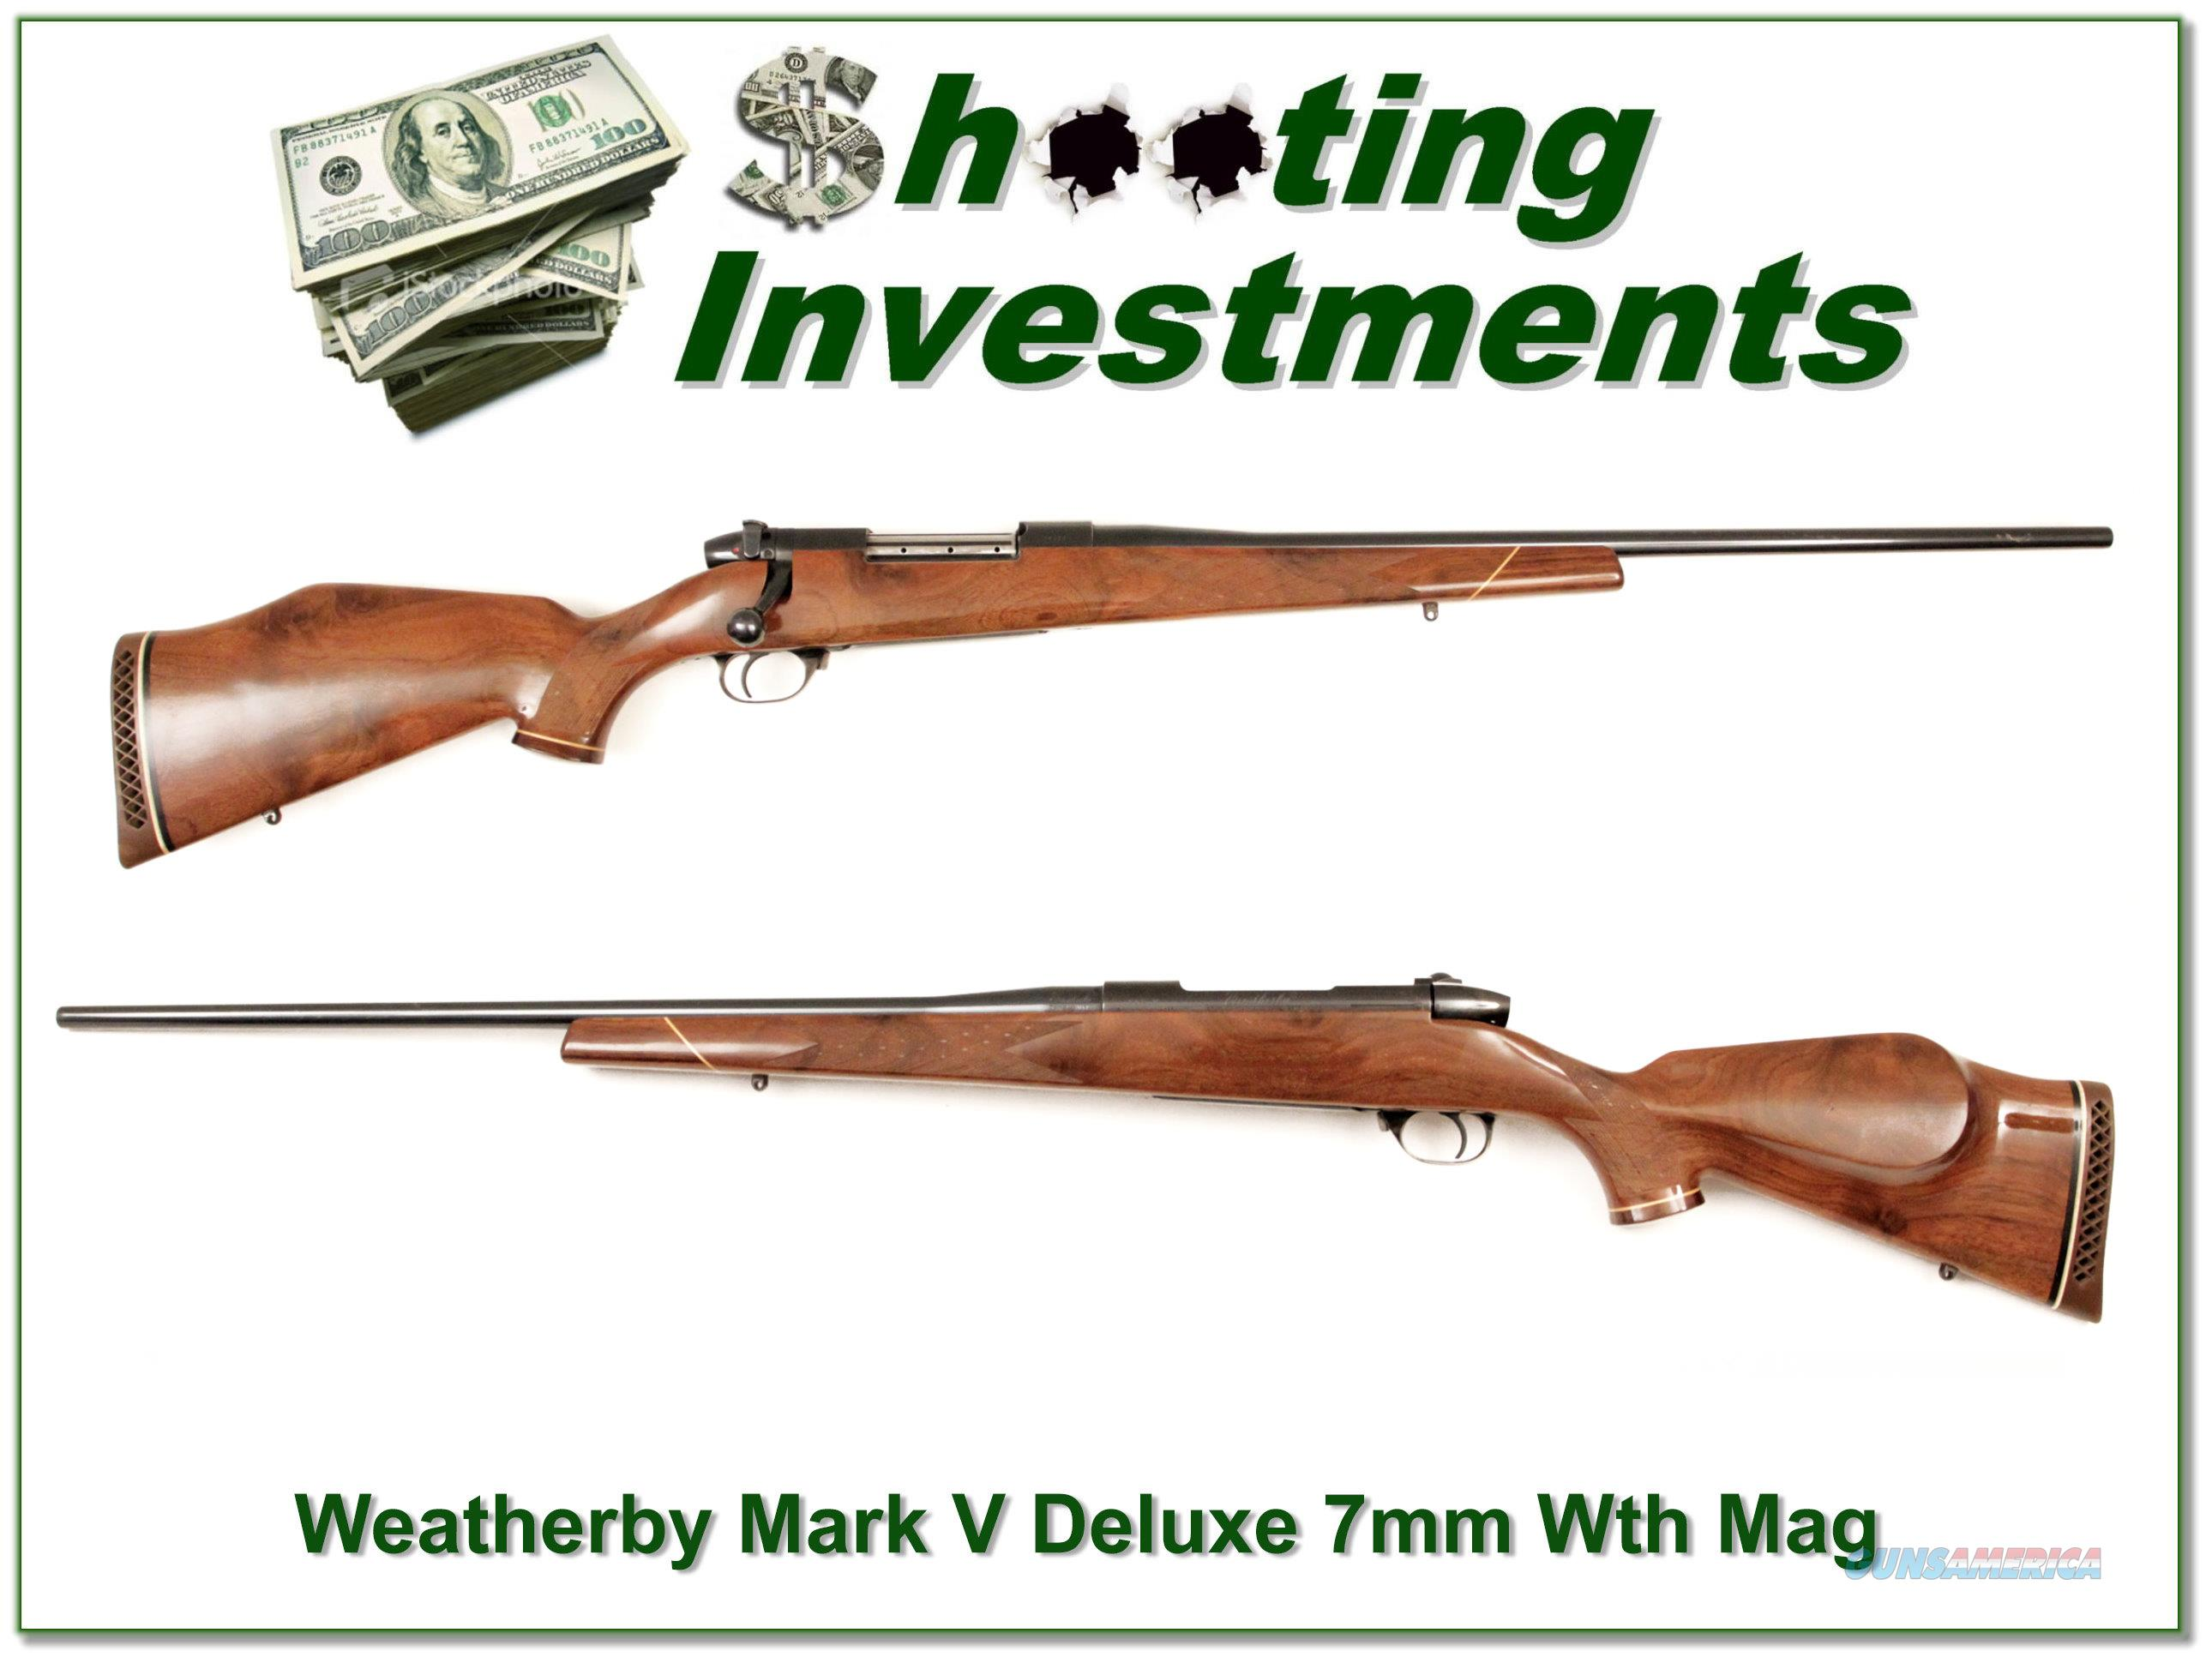 Weatherby Mark V Deluxe 7mm Wthy mag!  Guns > Rifles > Weatherby Rifles > Sporting